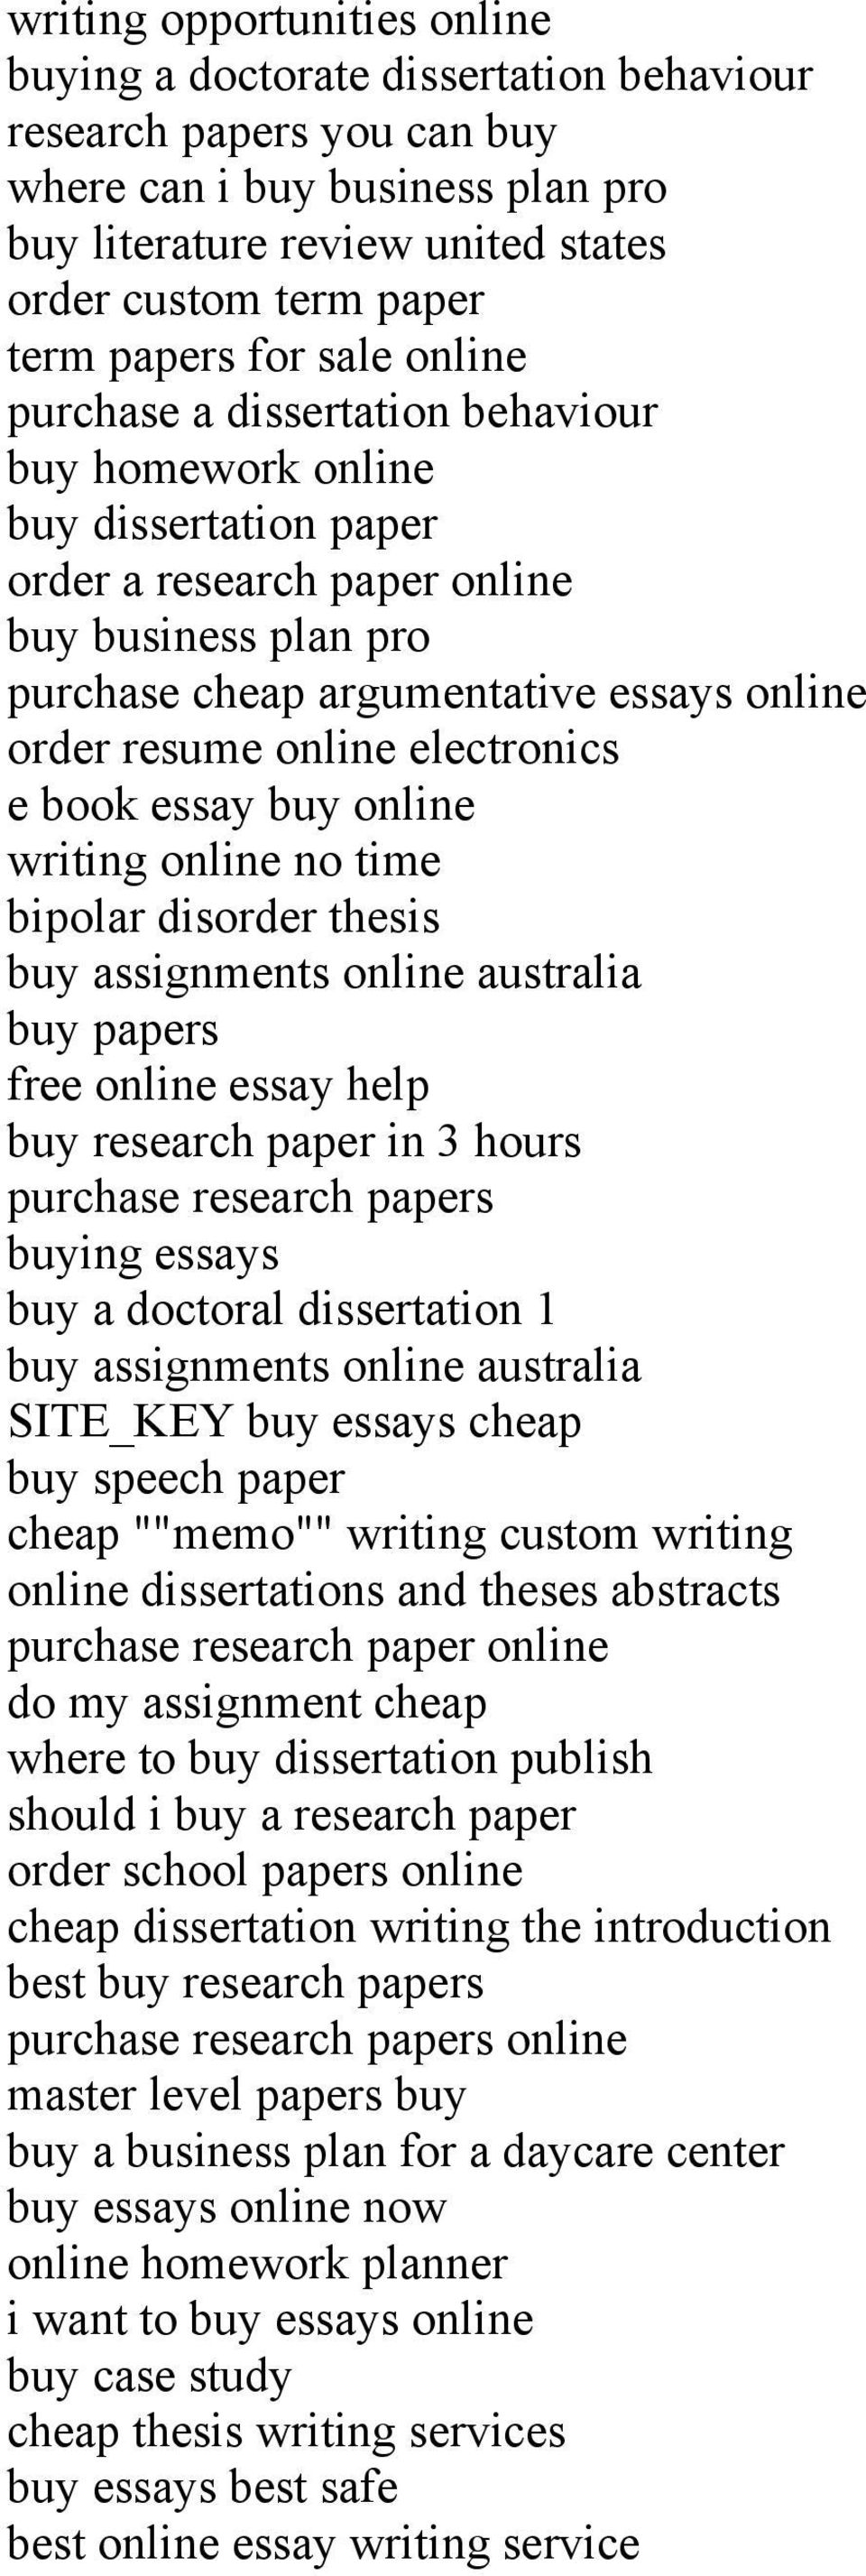 order resume online electronics e book essay buy online writing online no time bipolar disorder thesis buy assignments online australia buy papers free online essay help buy research paper in 3 hours